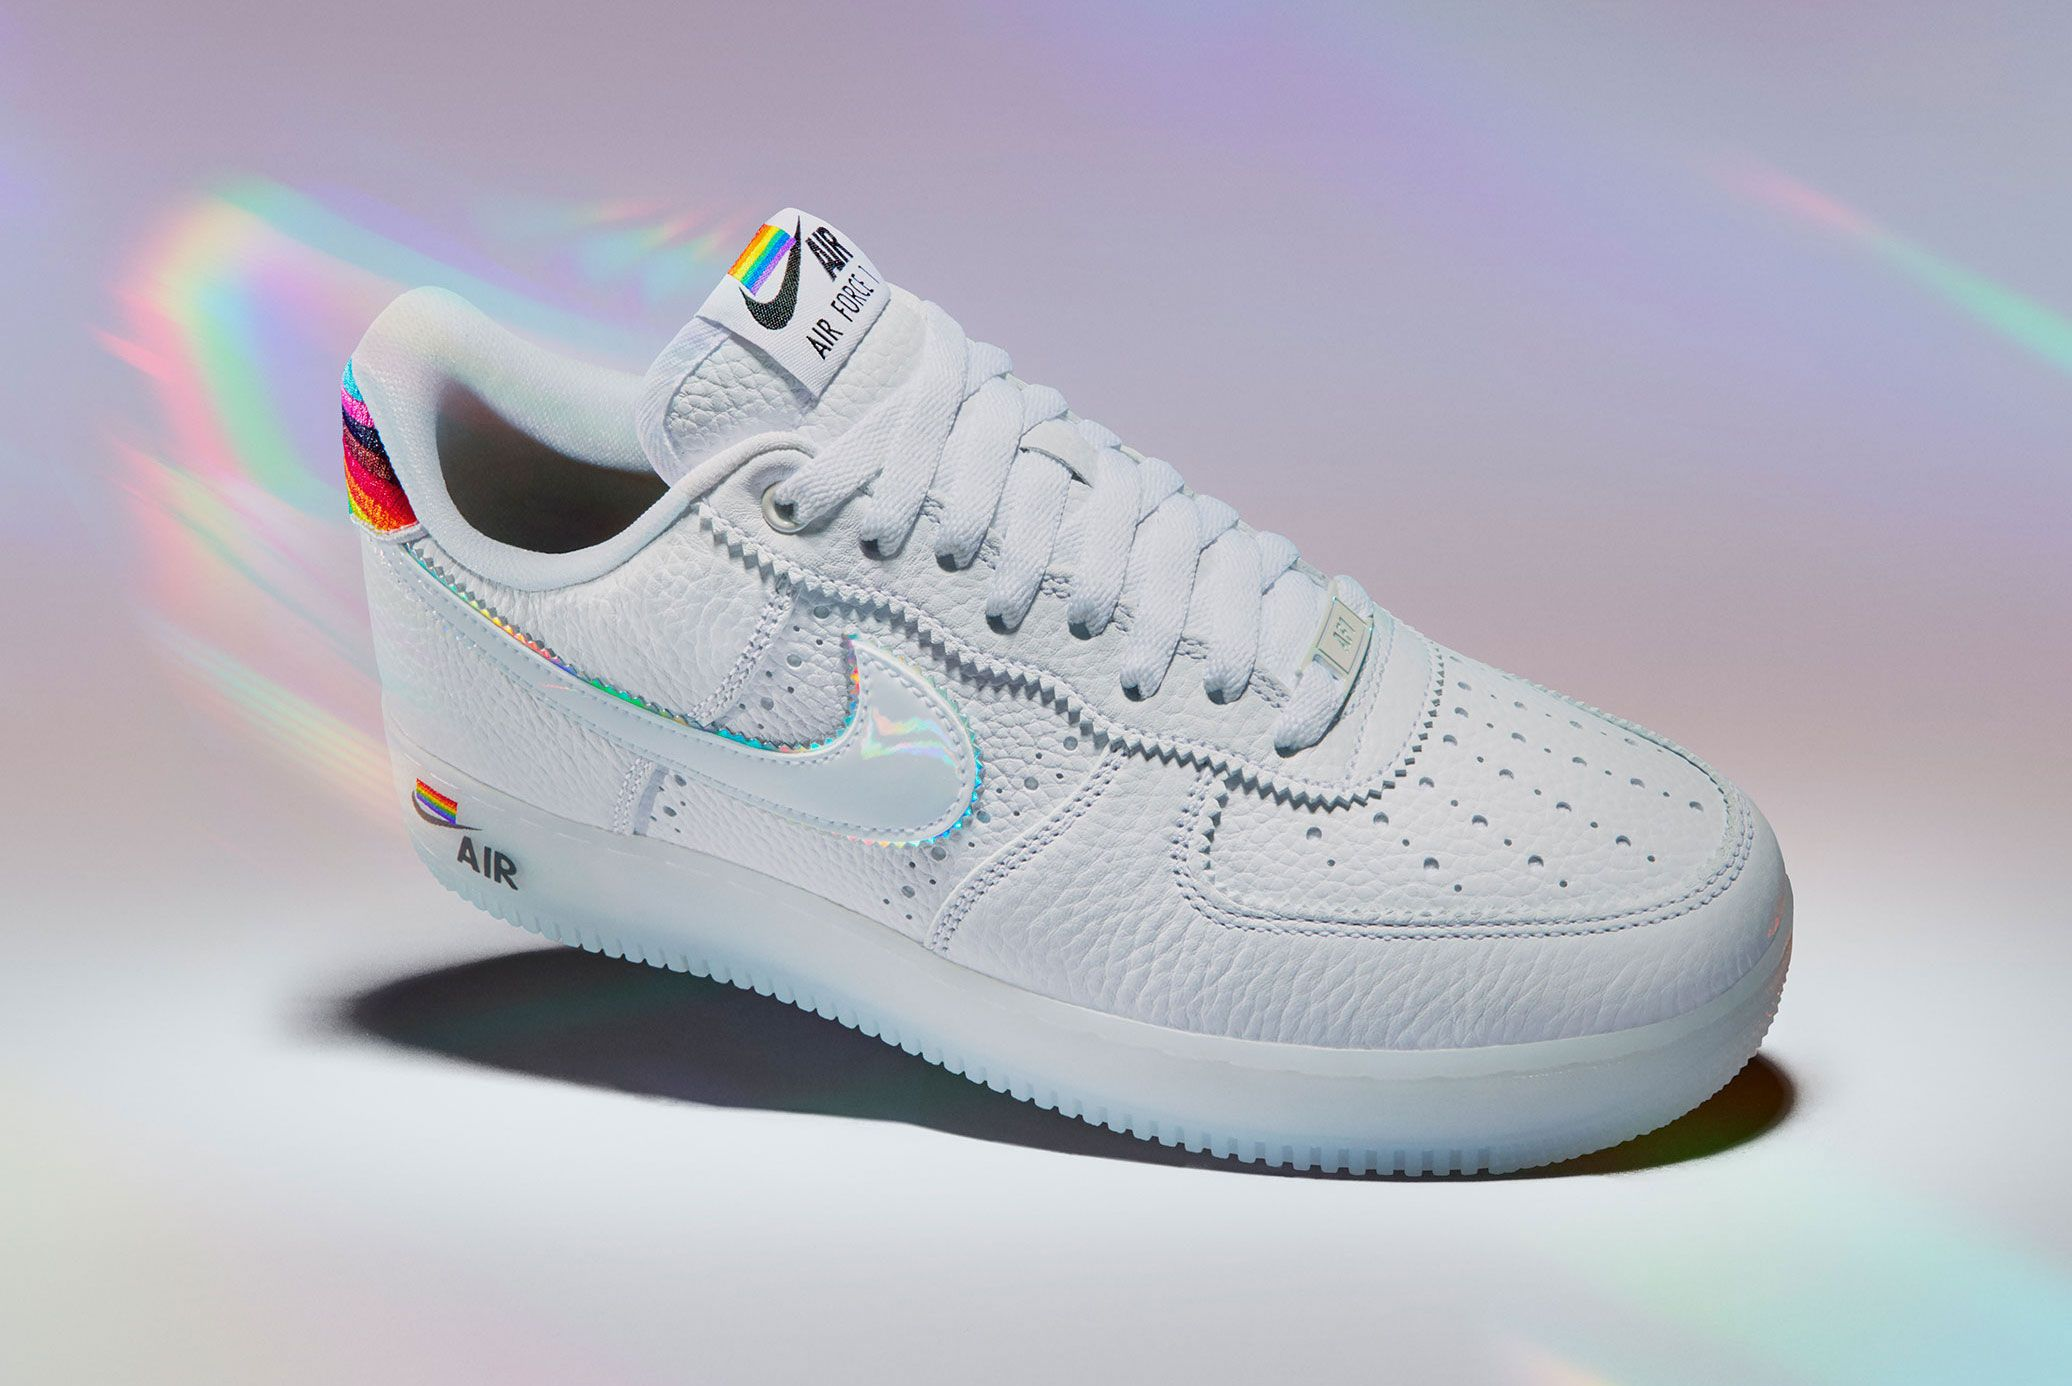 Nike Air Force 1 'Pride 2020'